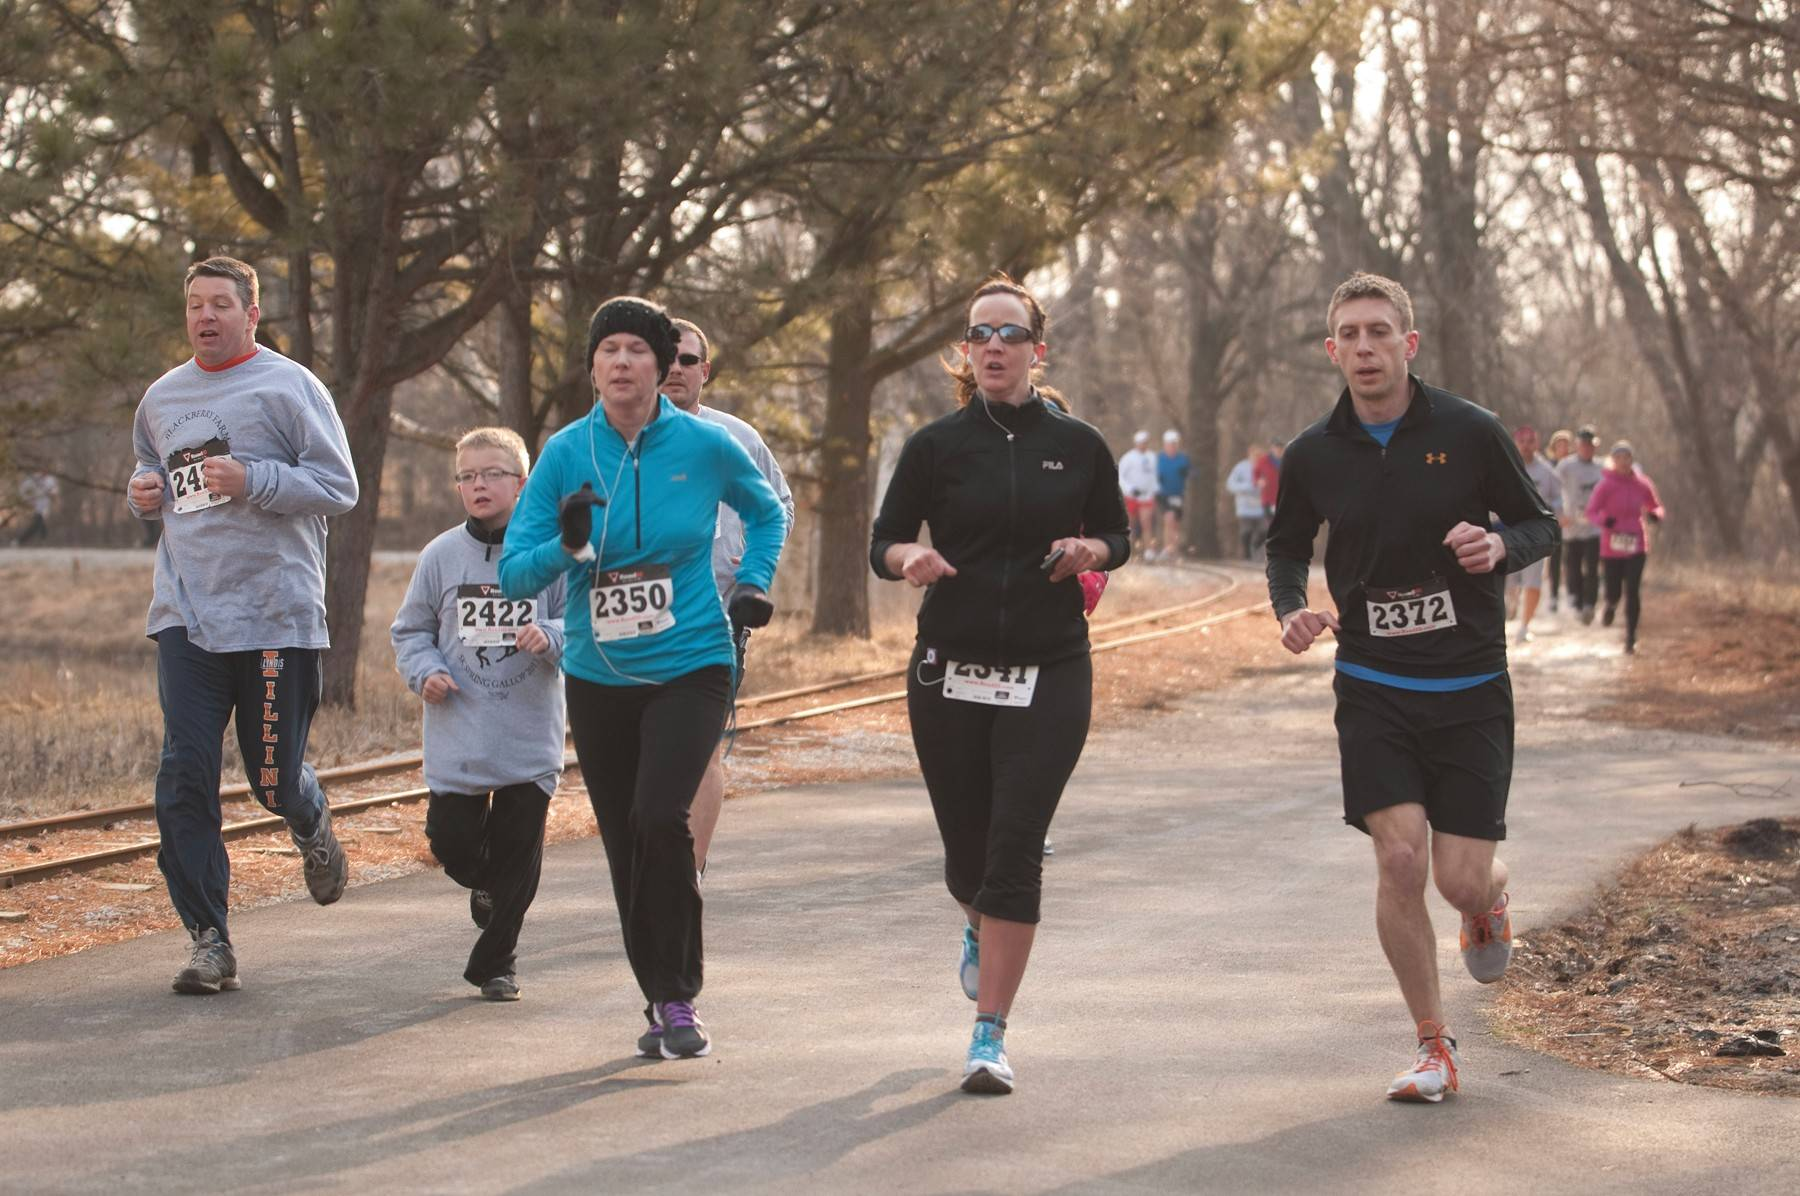 Runners of all ages and abilities will converge at Blackberry Farm on March 29 for the annual 5K Spring Gallop. Advance registration runs through March 21.